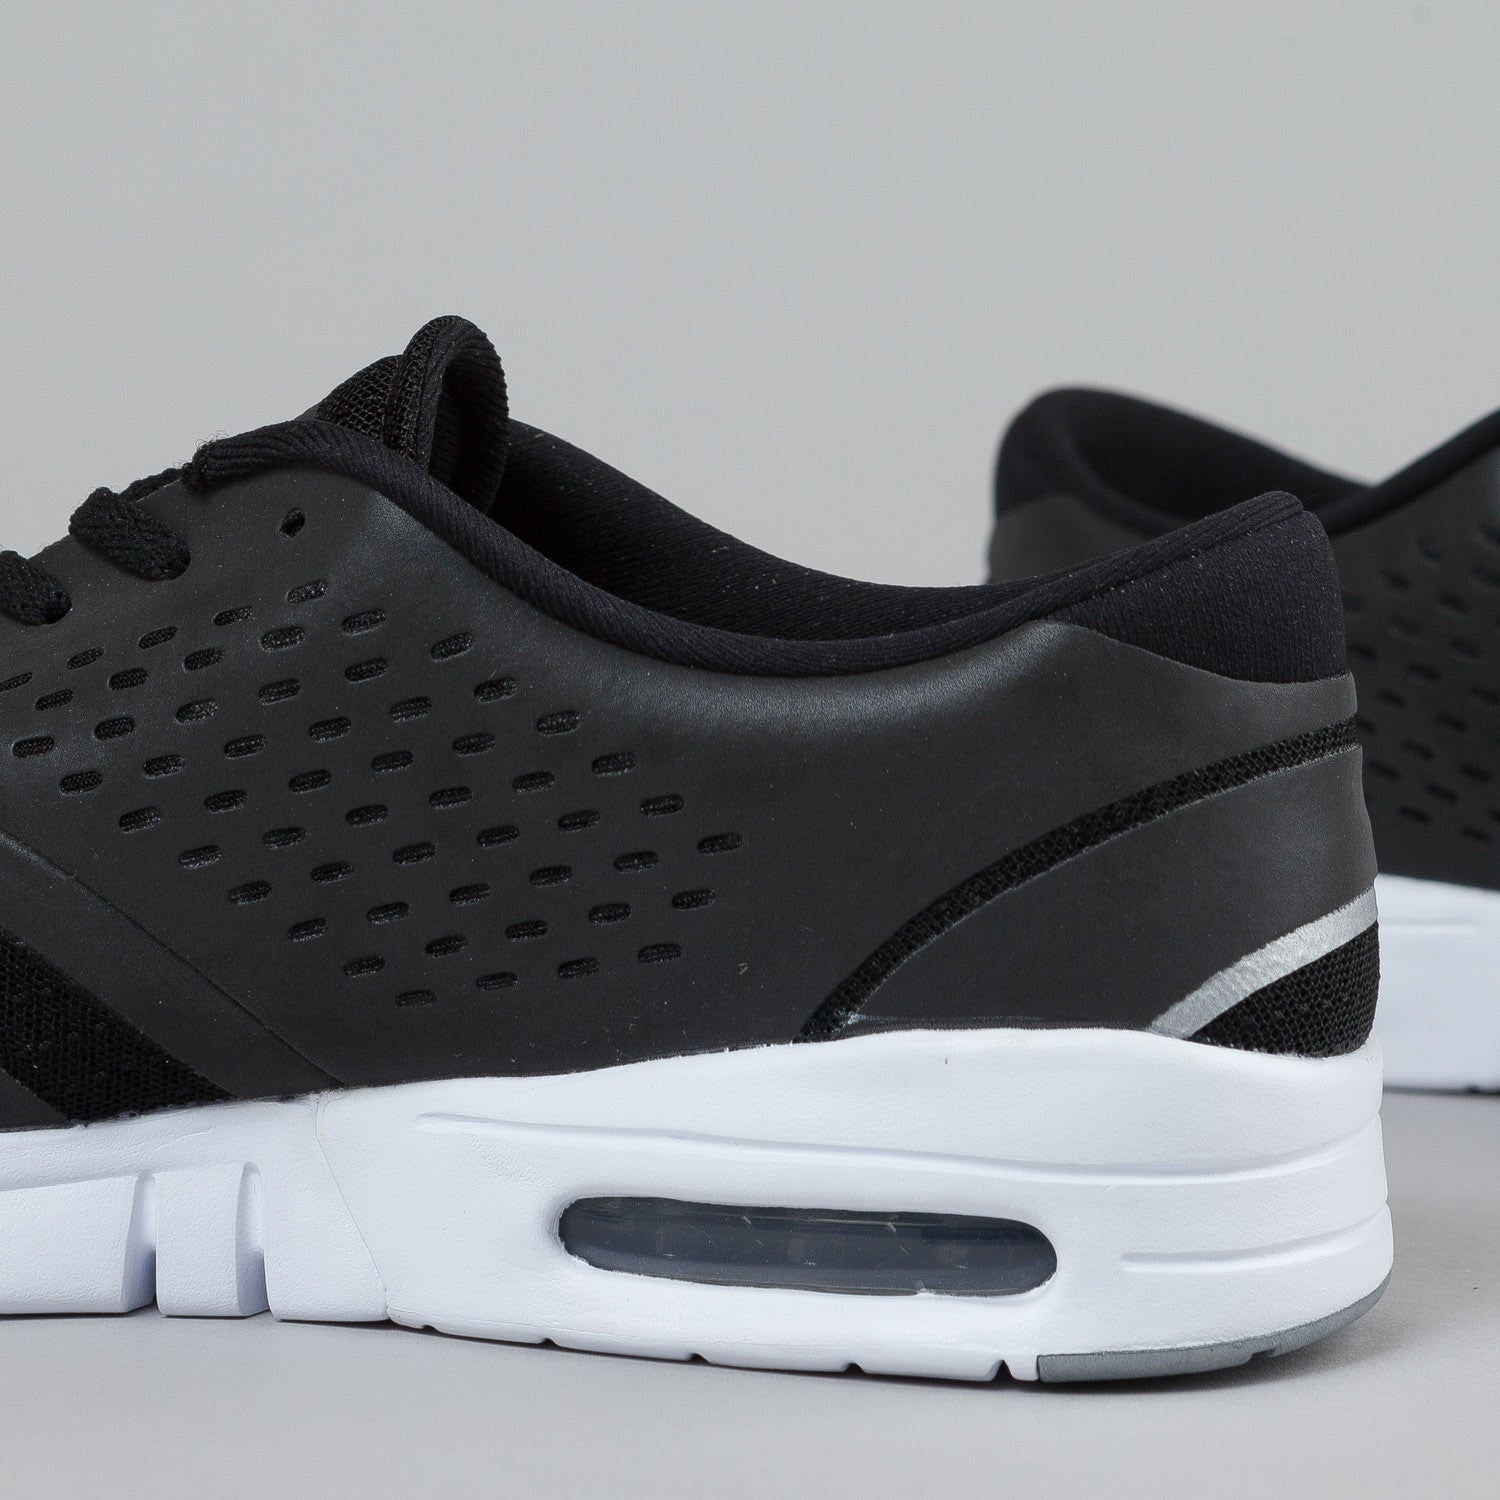 Nike Eric Koston 2 Max Black / Metallic Silver - White